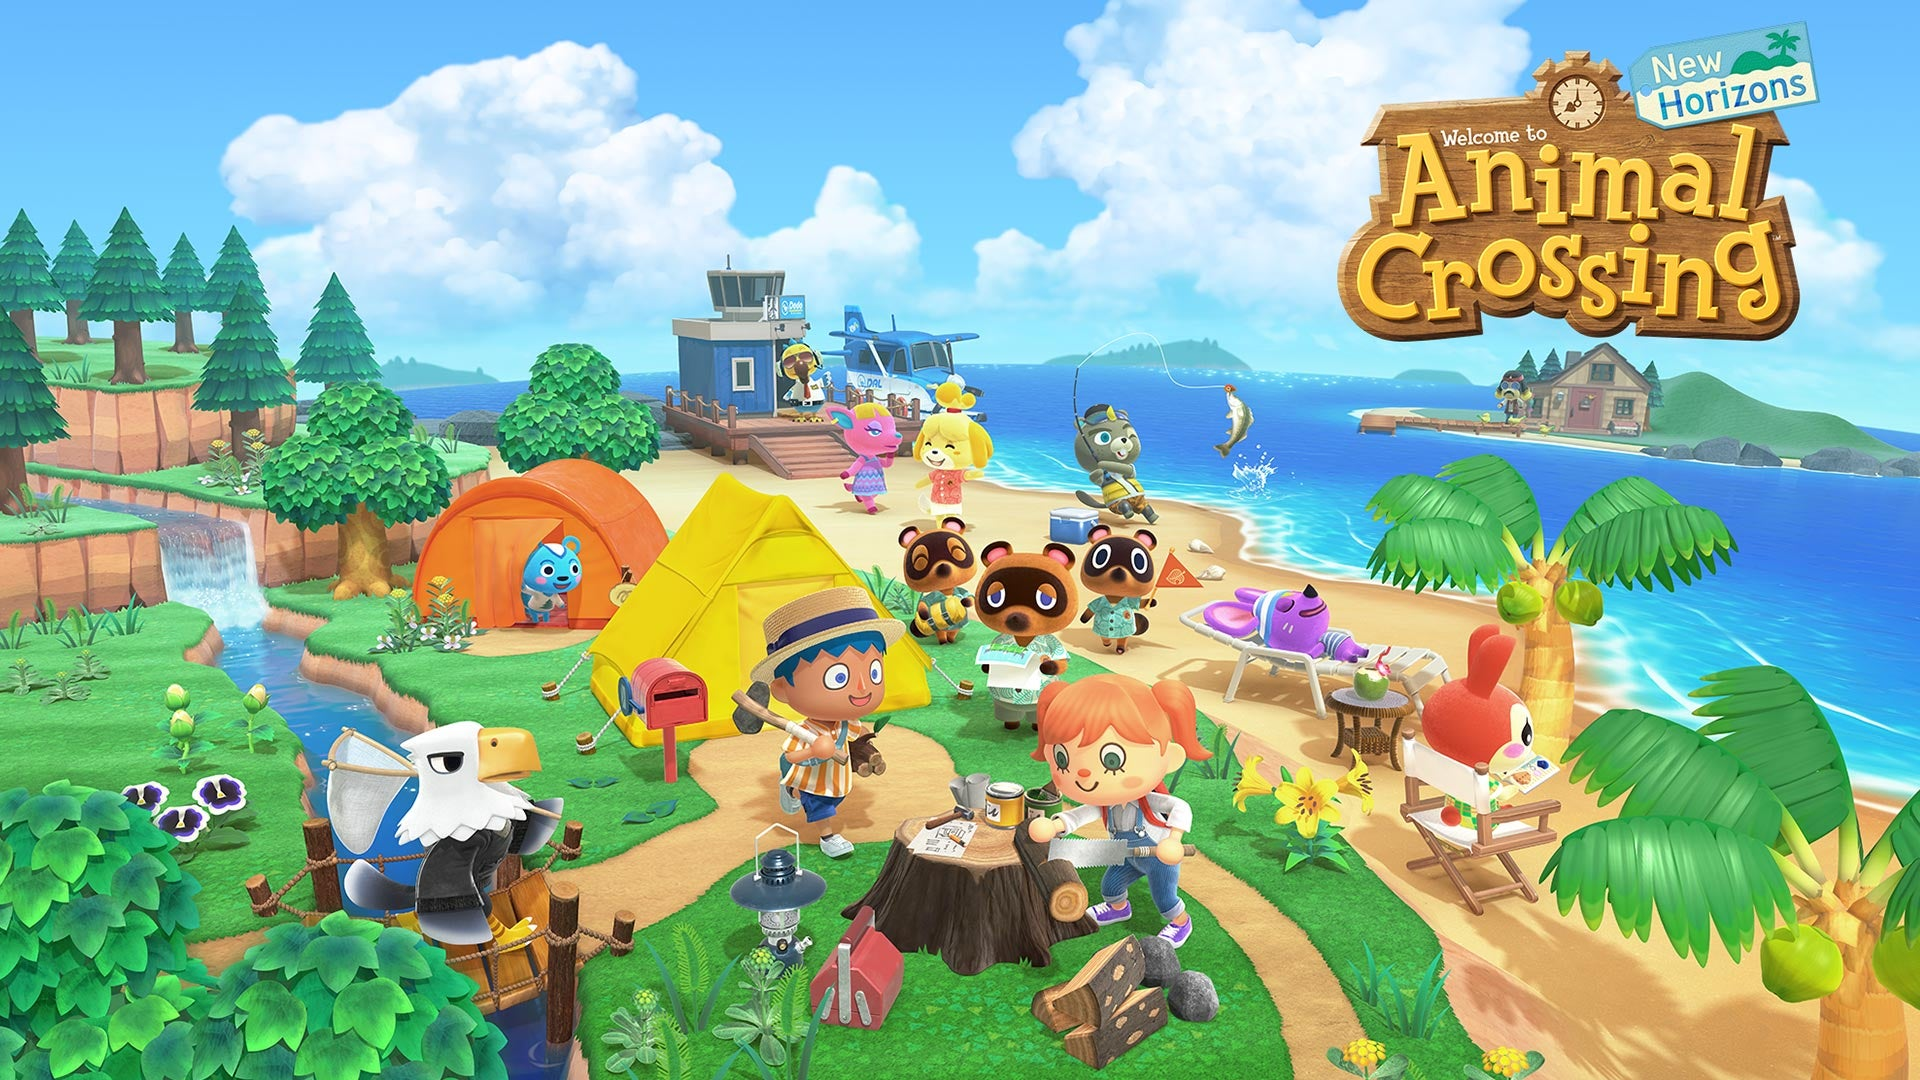 Over 11 Million Units Of Animal Crossing: New Horizons Sold In Just 11 Days